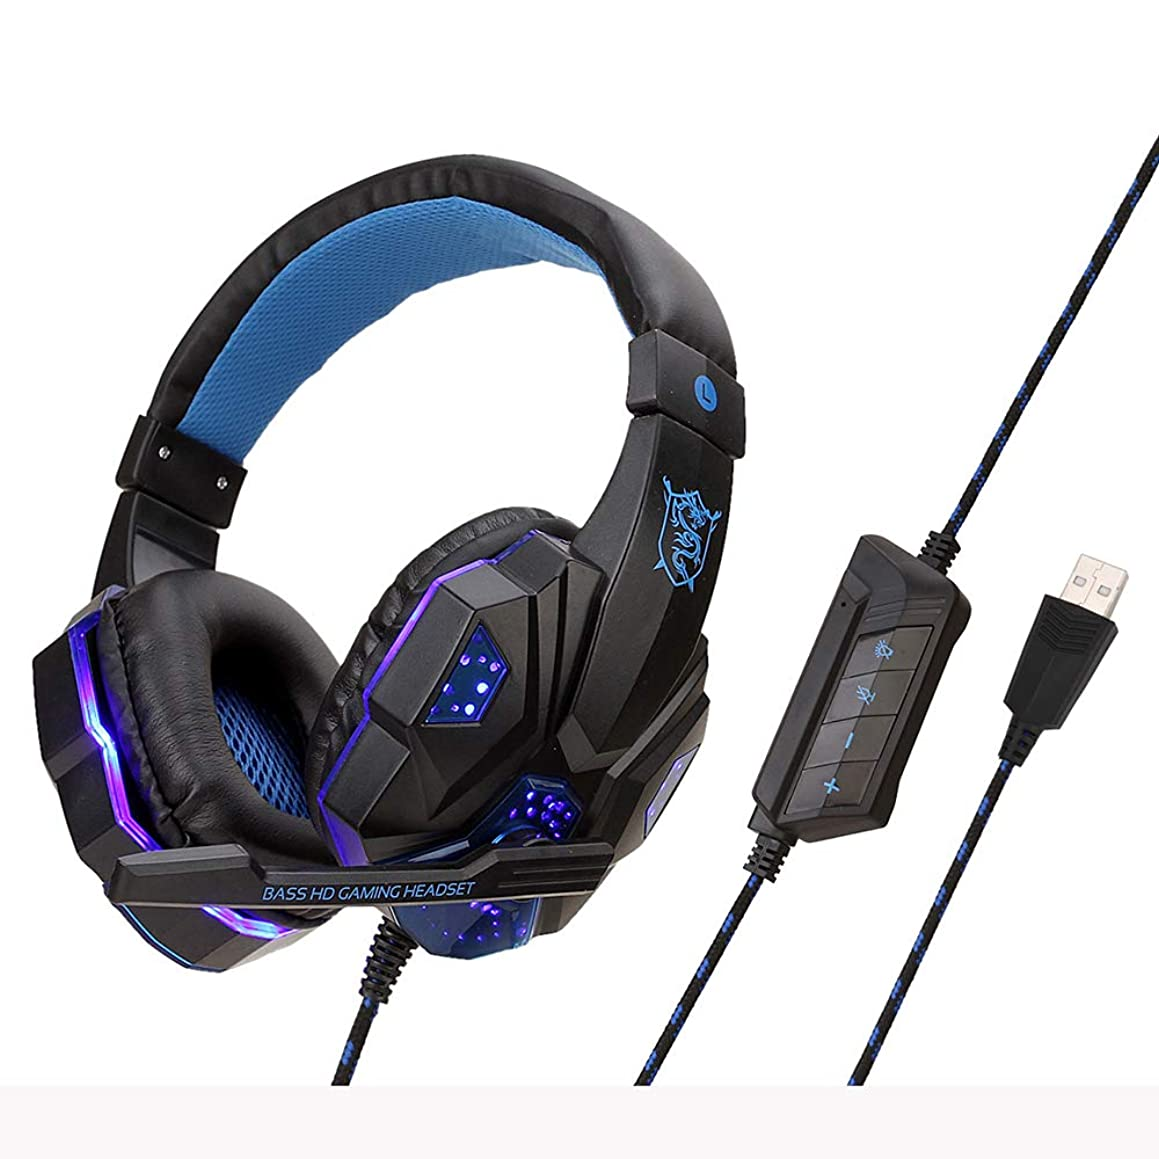 GuangXin Gaming Headset, with Adjustable Noise Cancelling Mic, LED Light, Bass Surround, Soft Memory Earmuffs, Over-Ear Headphone for Computer Game,BlackBlue